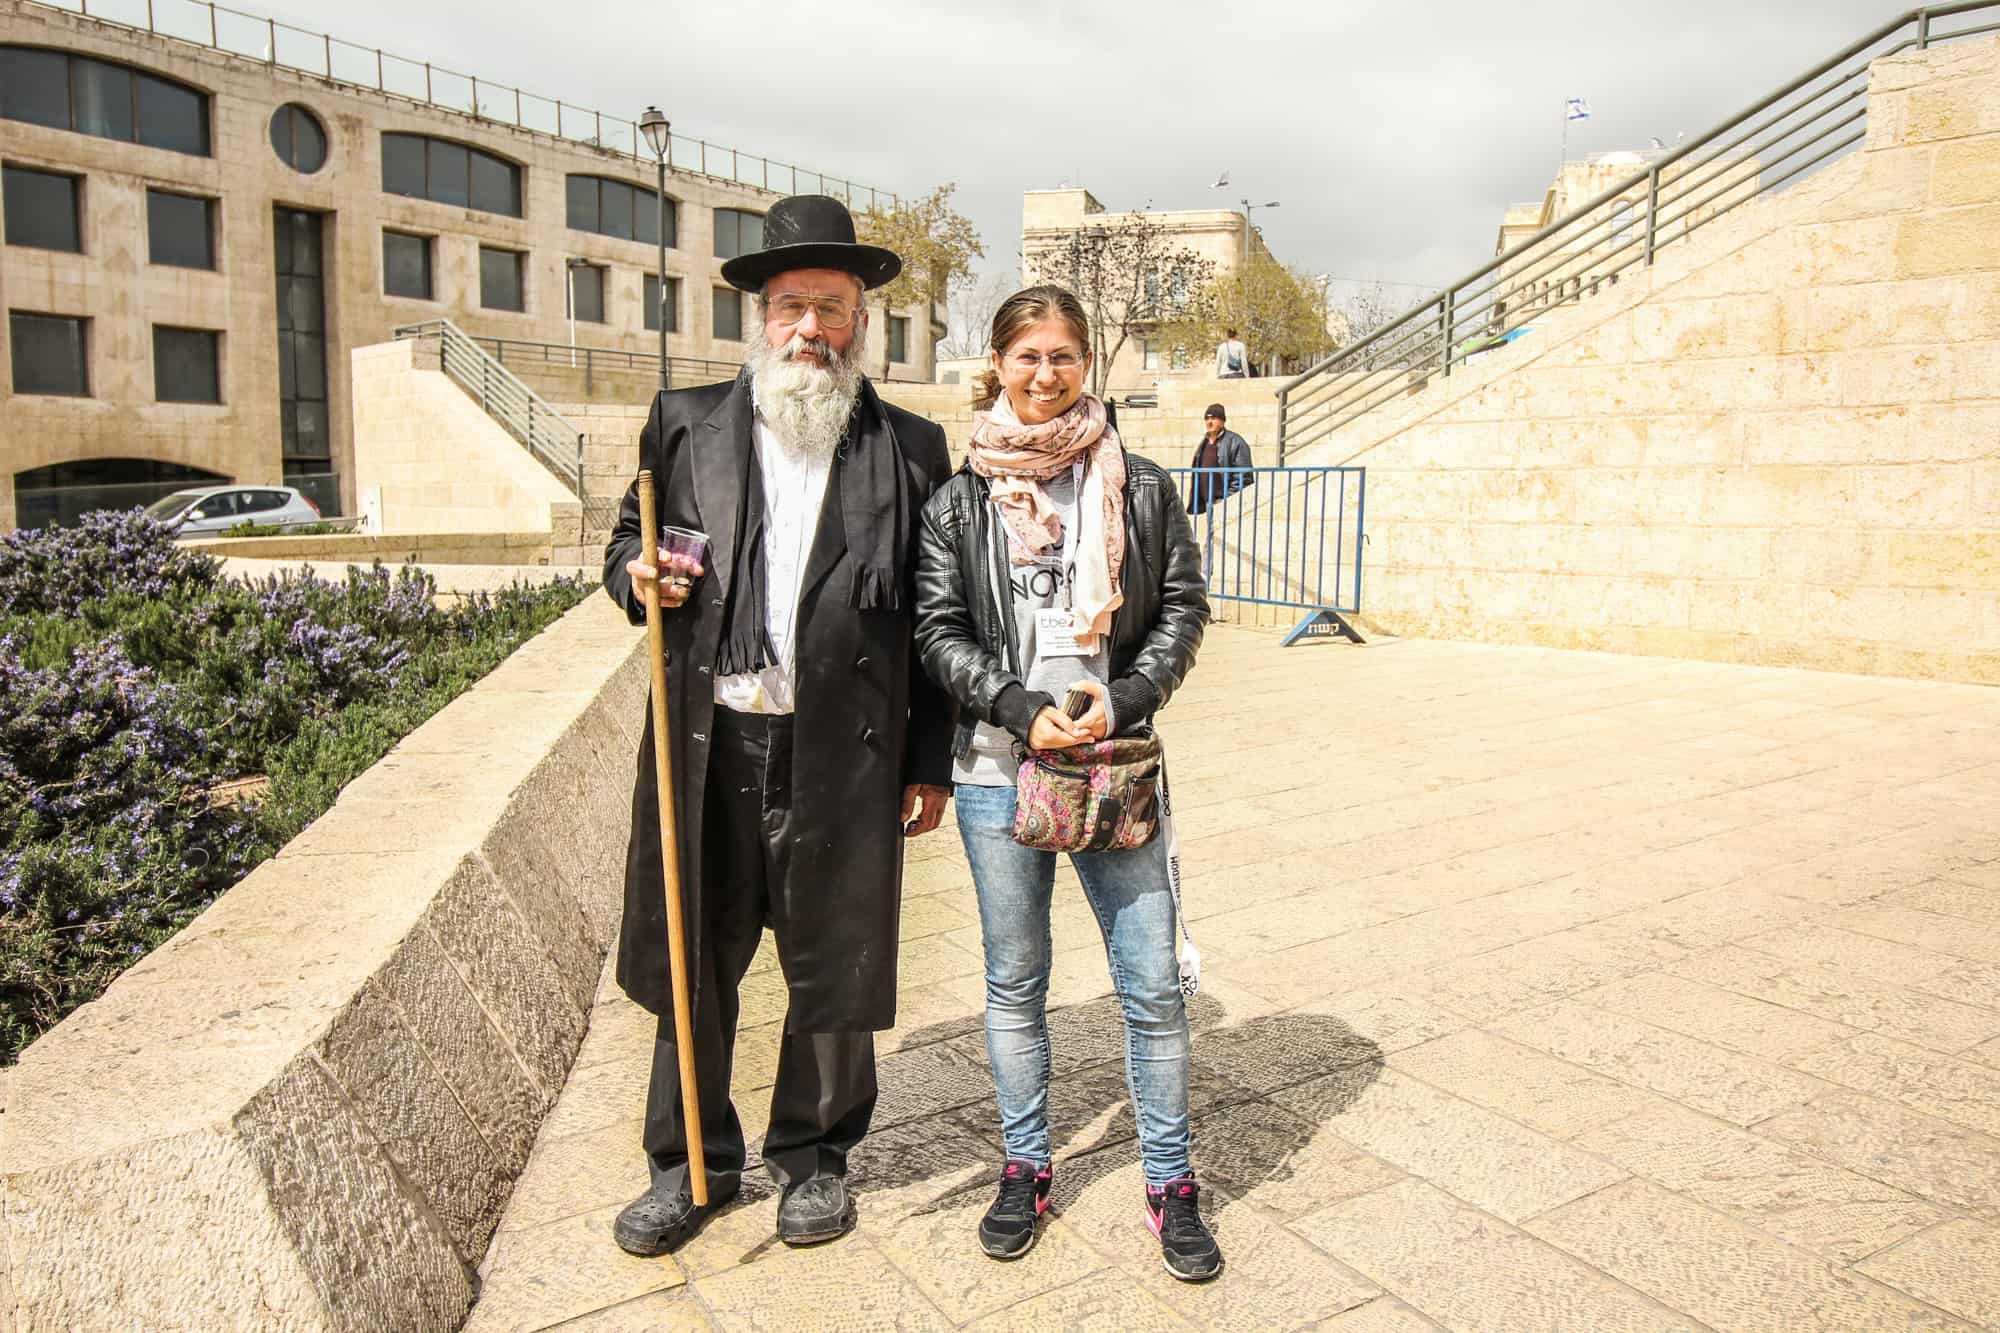 Traveling alone – The Israeli and I